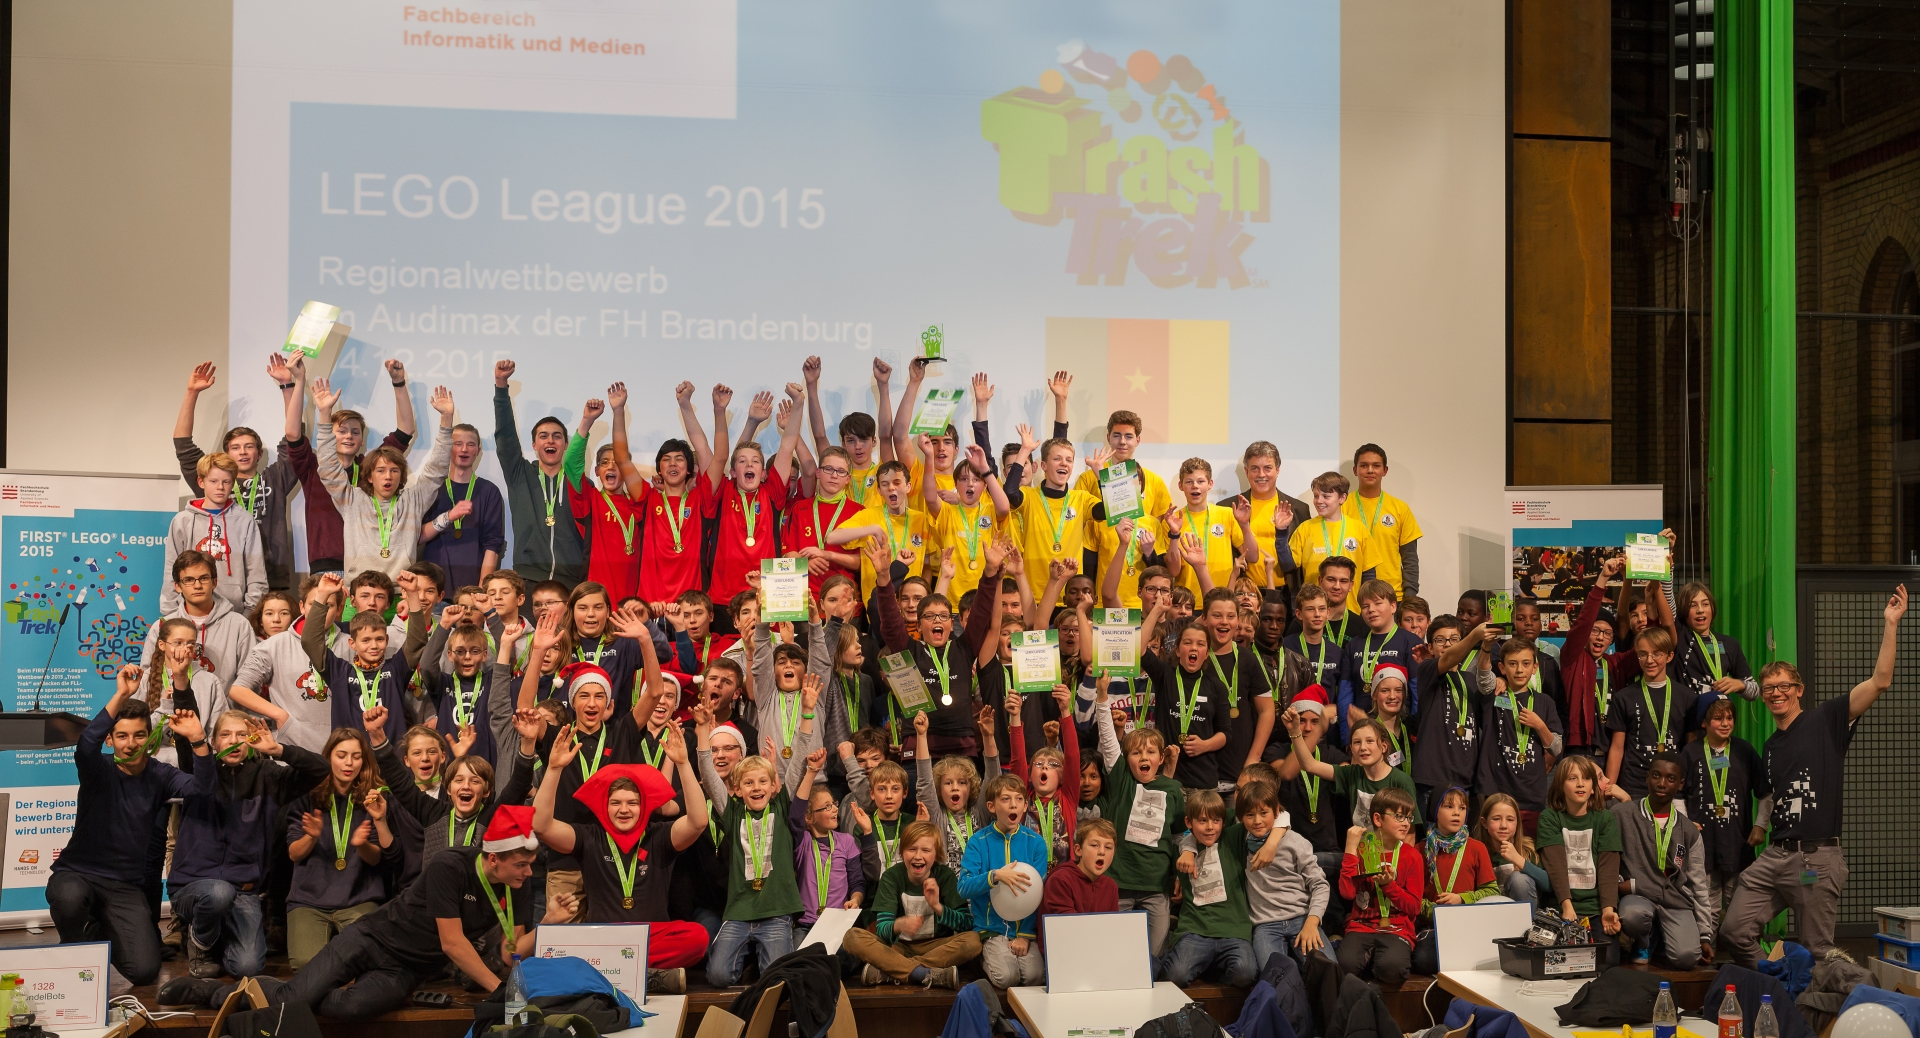 Gruppenfoto der Teams der LEGO League 2015 in Brandenburg